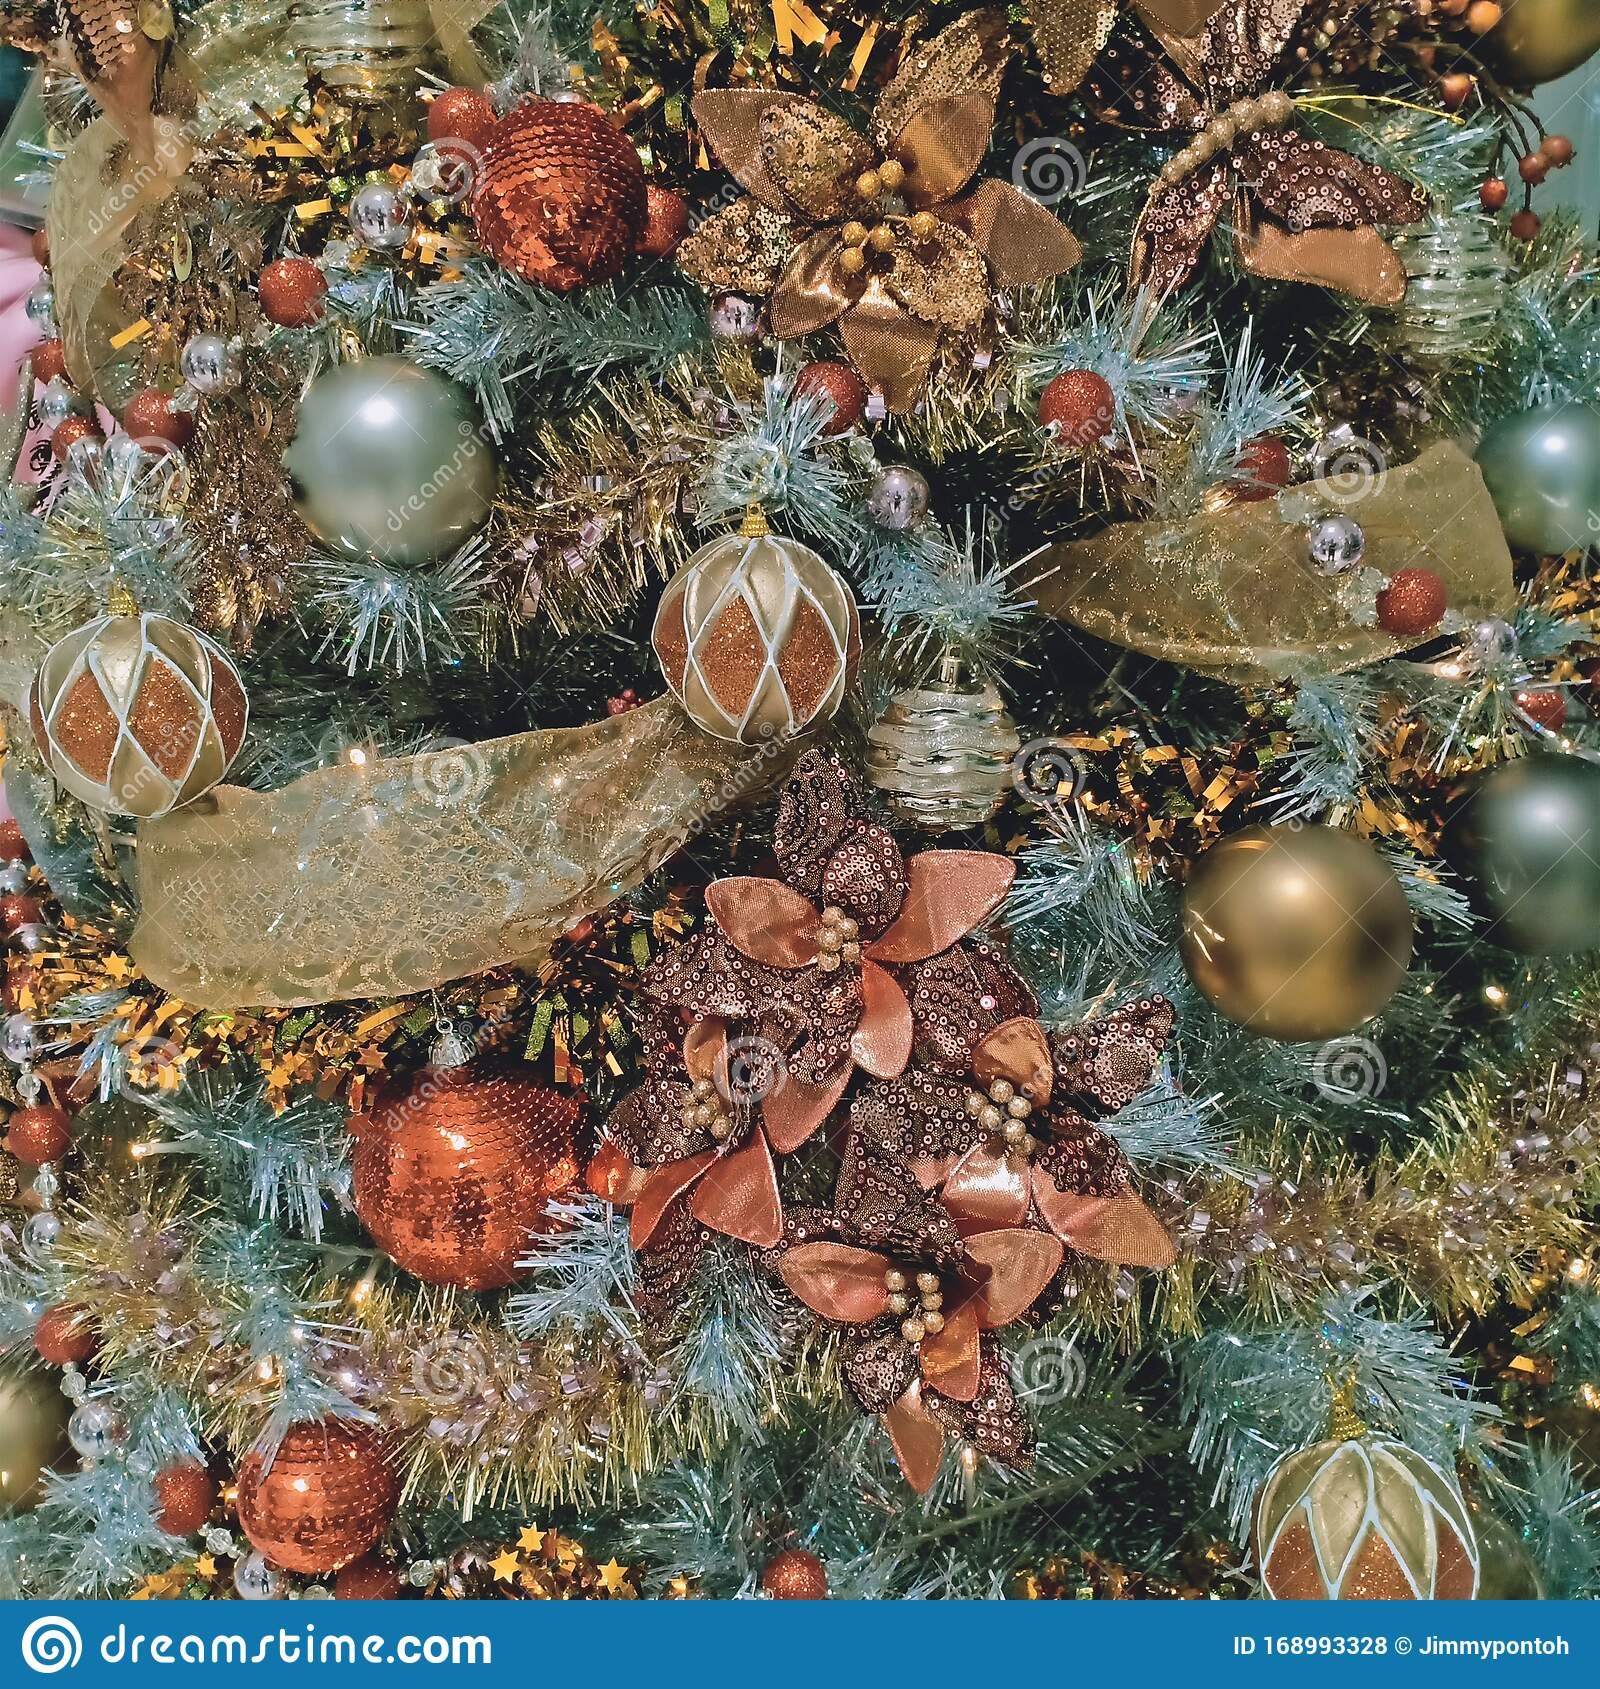 Colorful Christmas Decoration With Gold Ribbon Flowers And Balls Stock Photo Image Of Blue Holiday 168993328